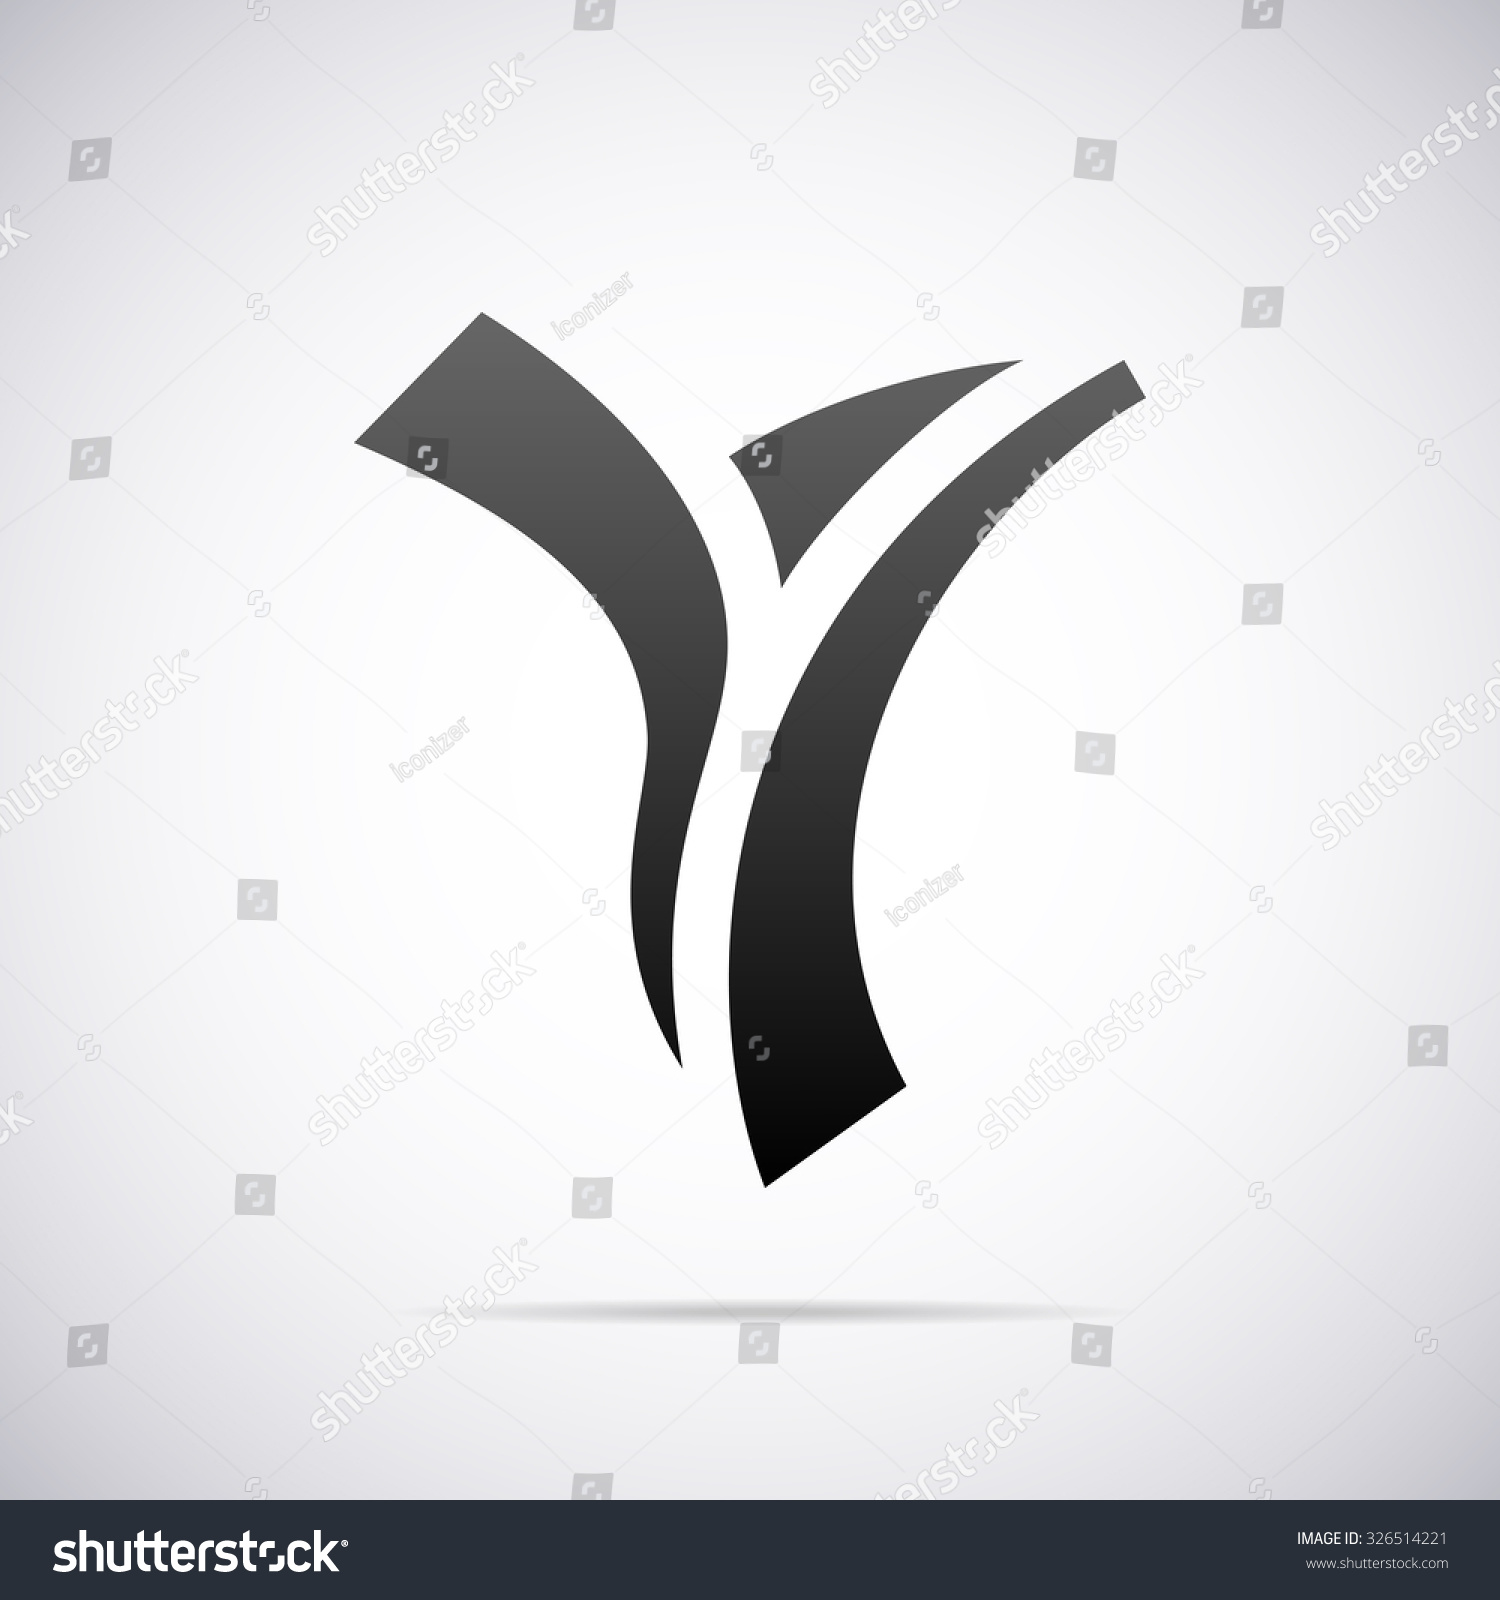 y design Logo Letter Y Design Template Stock Vector (Royalty Free  y design